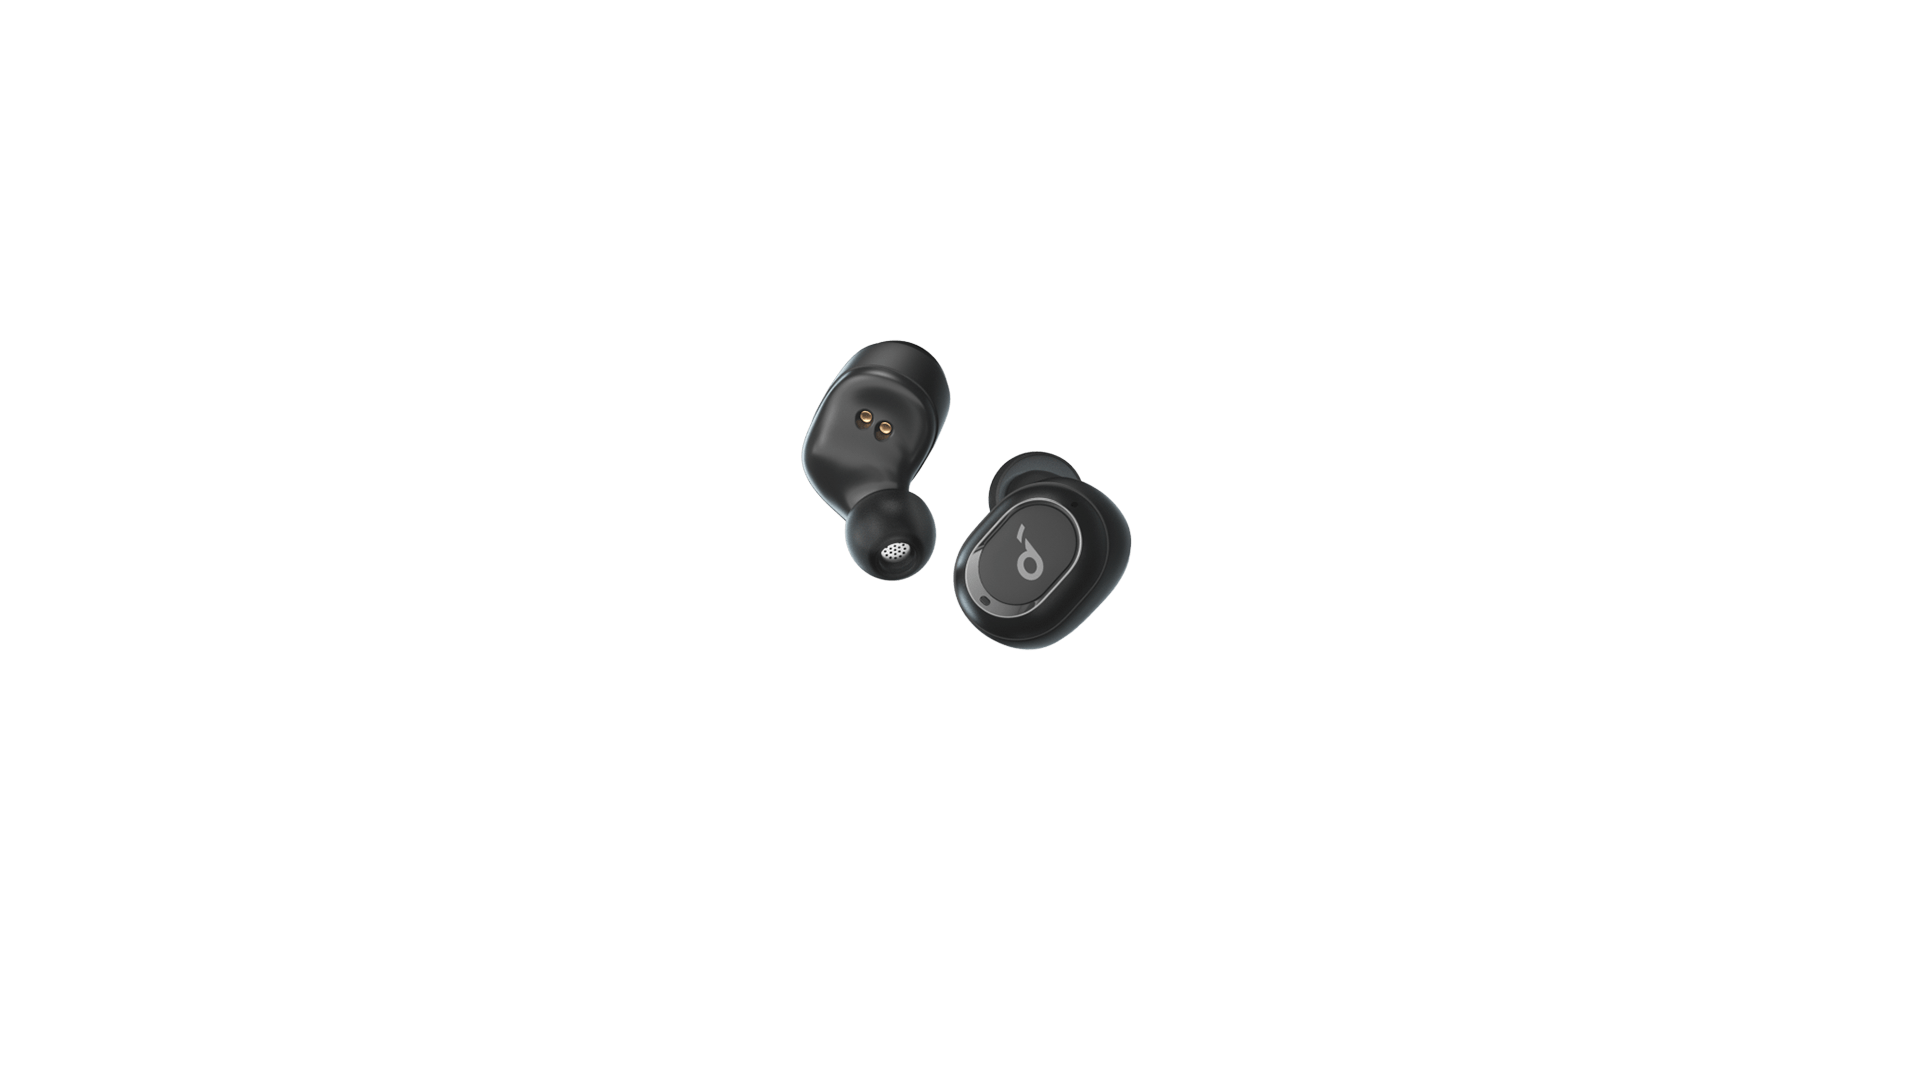 Anker Soundcore Liberty Neo Earbuds